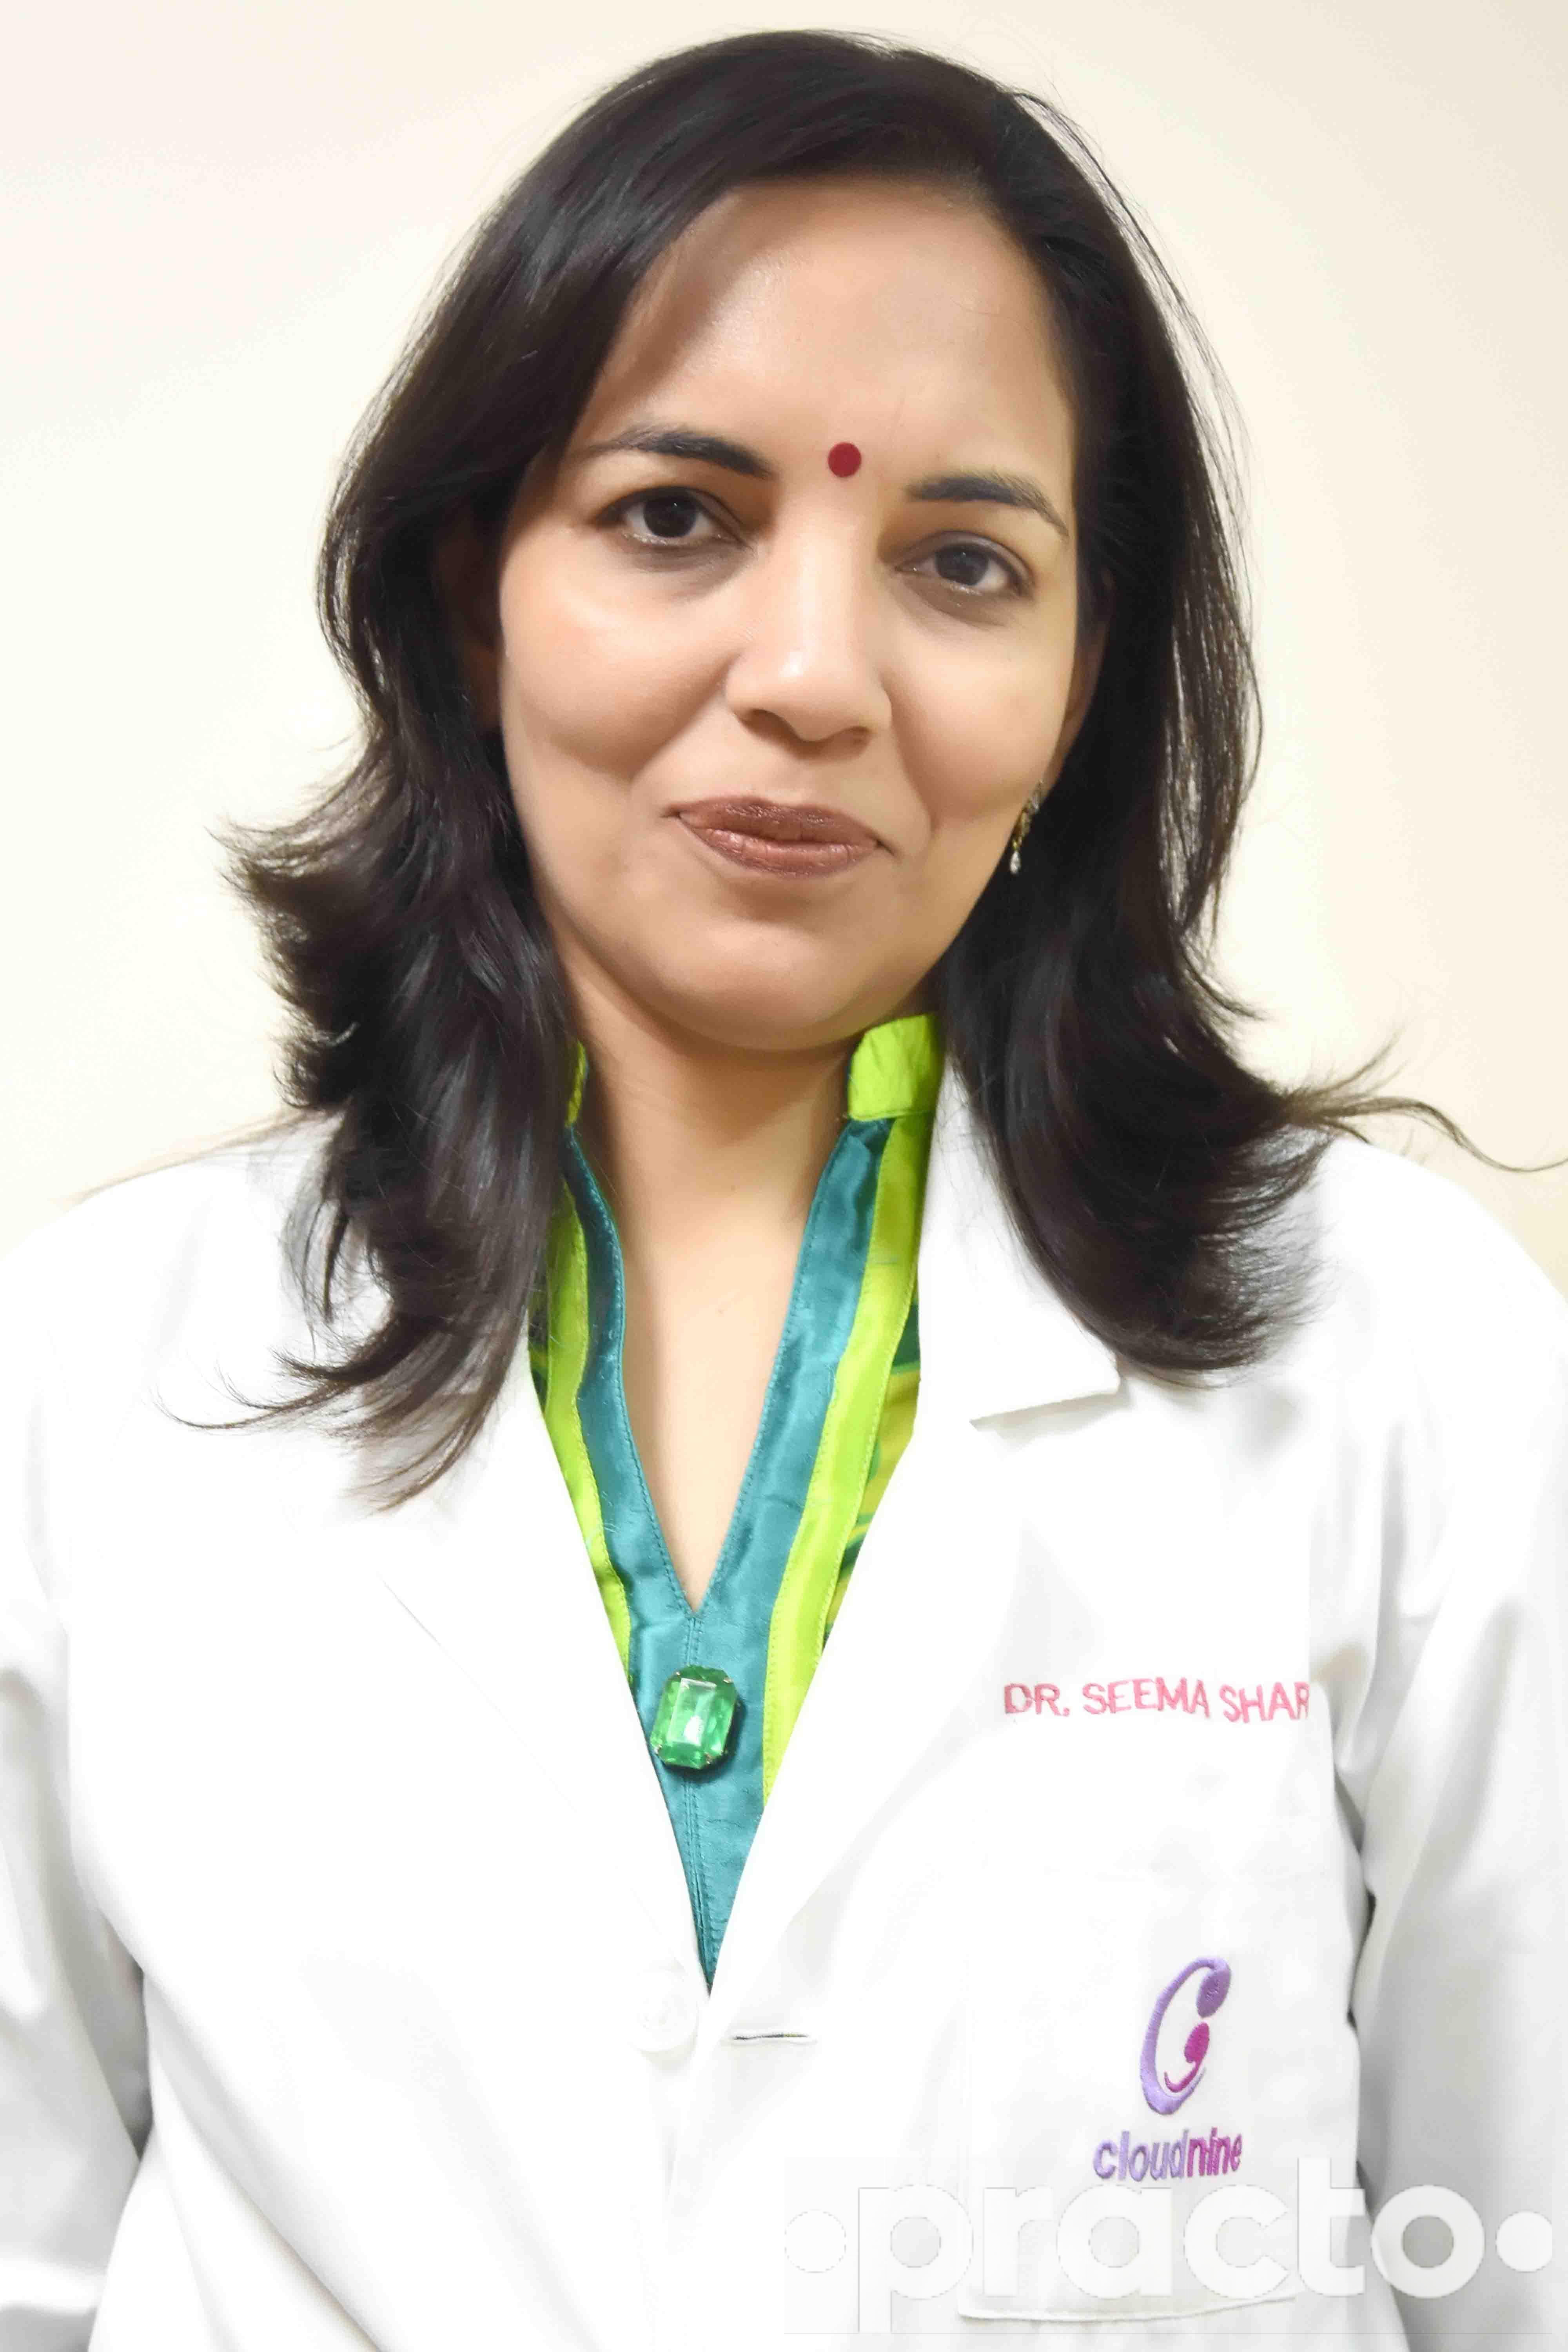 Dr  Seema Sharma - Gynecologist - Book Appointment Online, View Fees